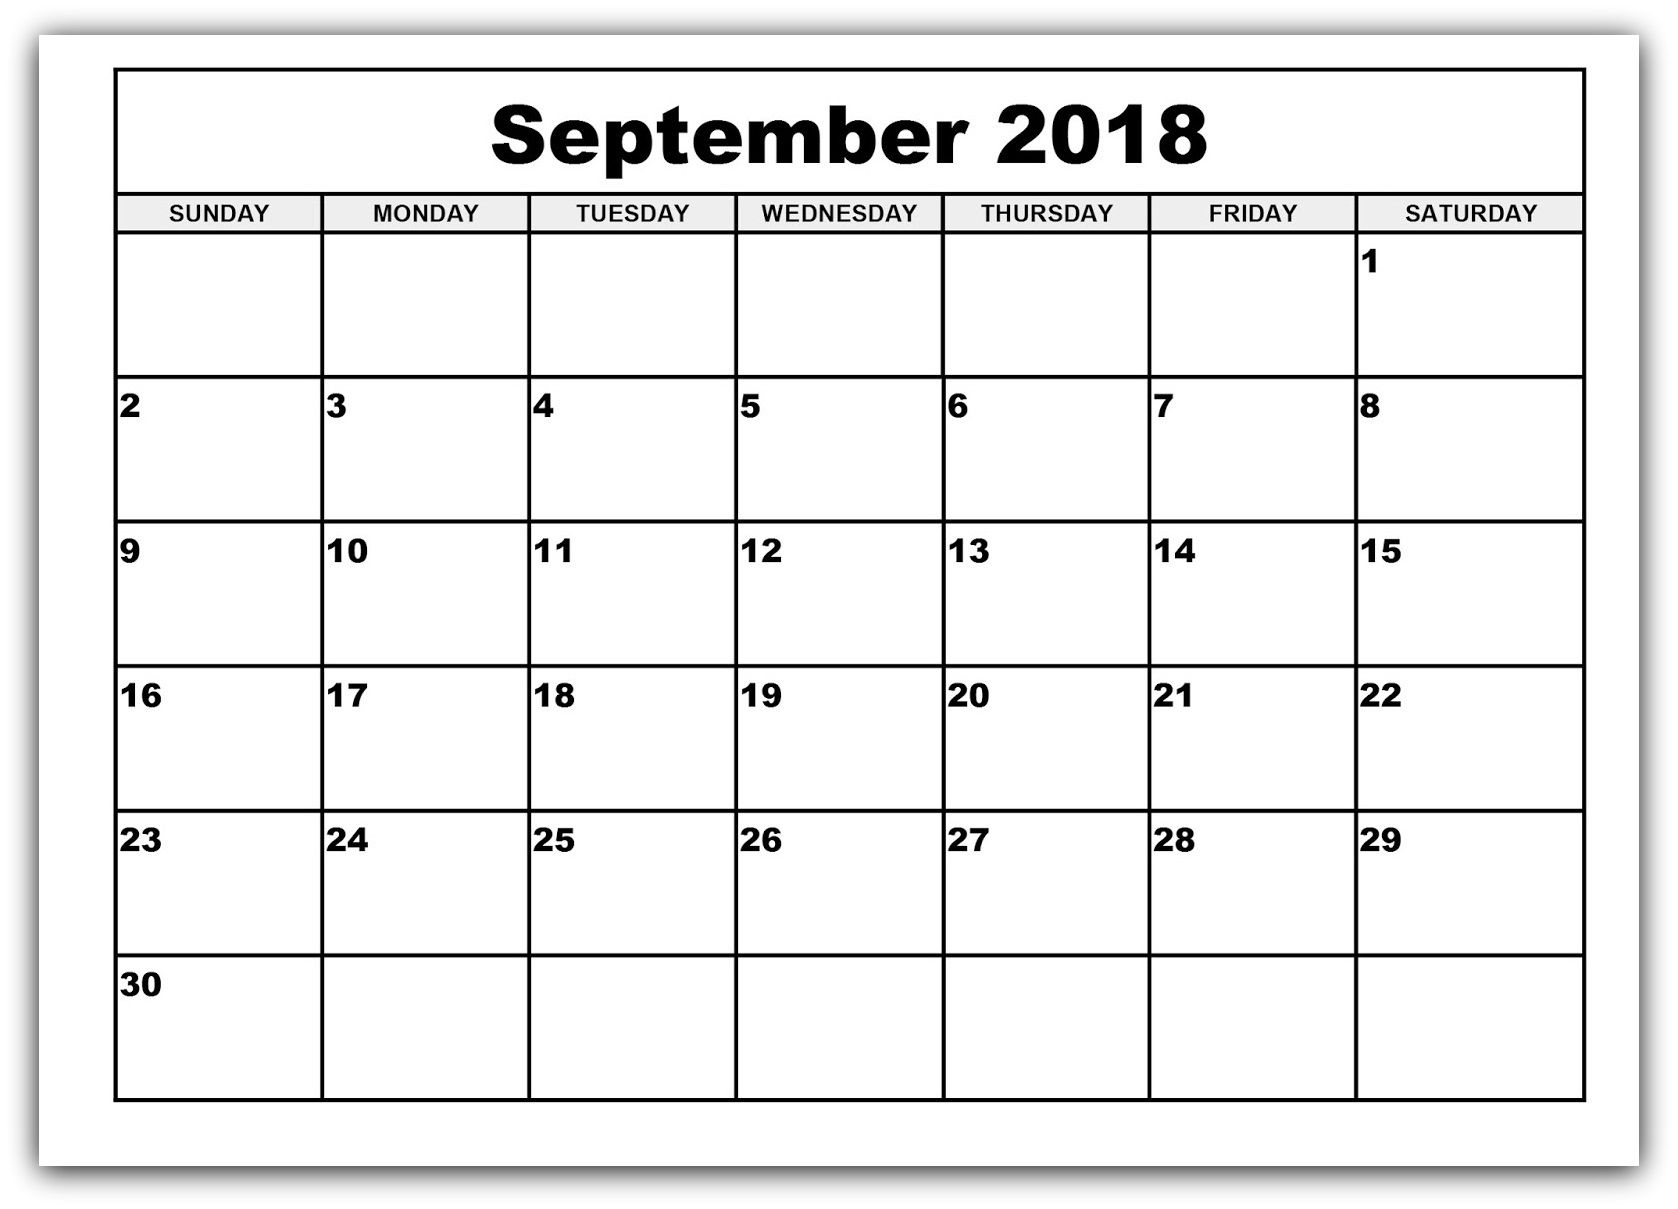 September 2018 Calendar Free Printable Bold Style | Calendar throughout Large Bold Printable Calendar